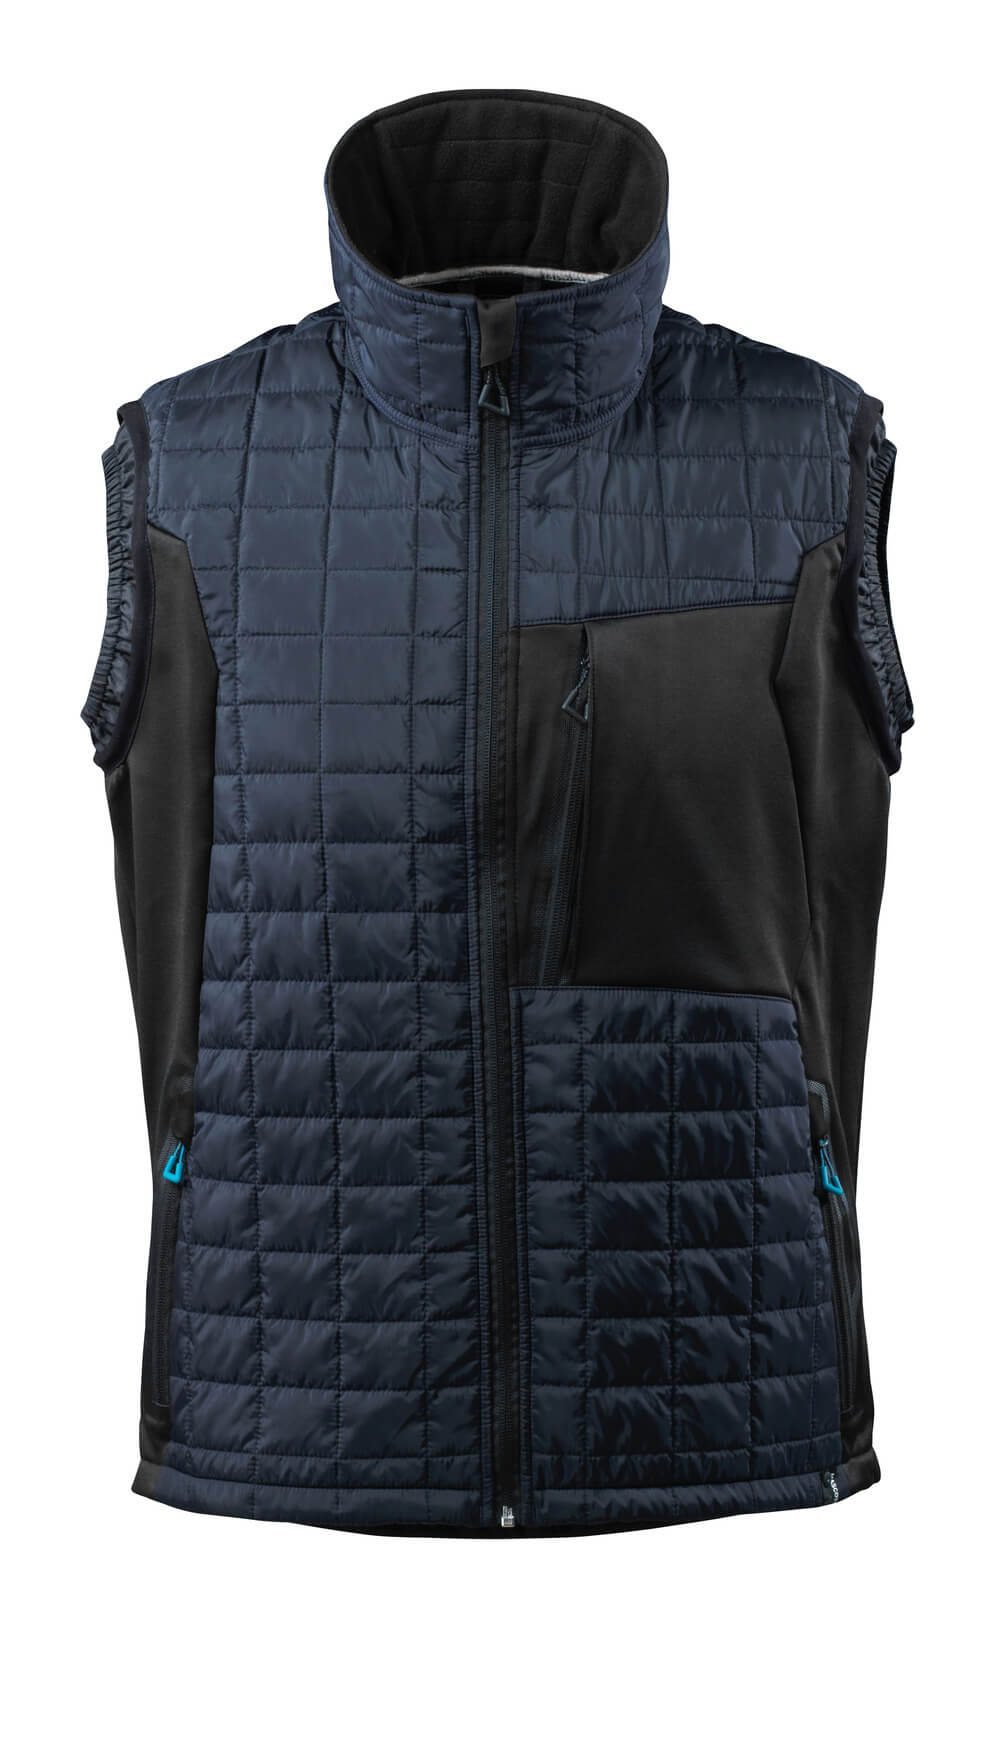 Mascot Advanced thermobodywarmer 17165 | Waterafstotend | Lichtgewicht